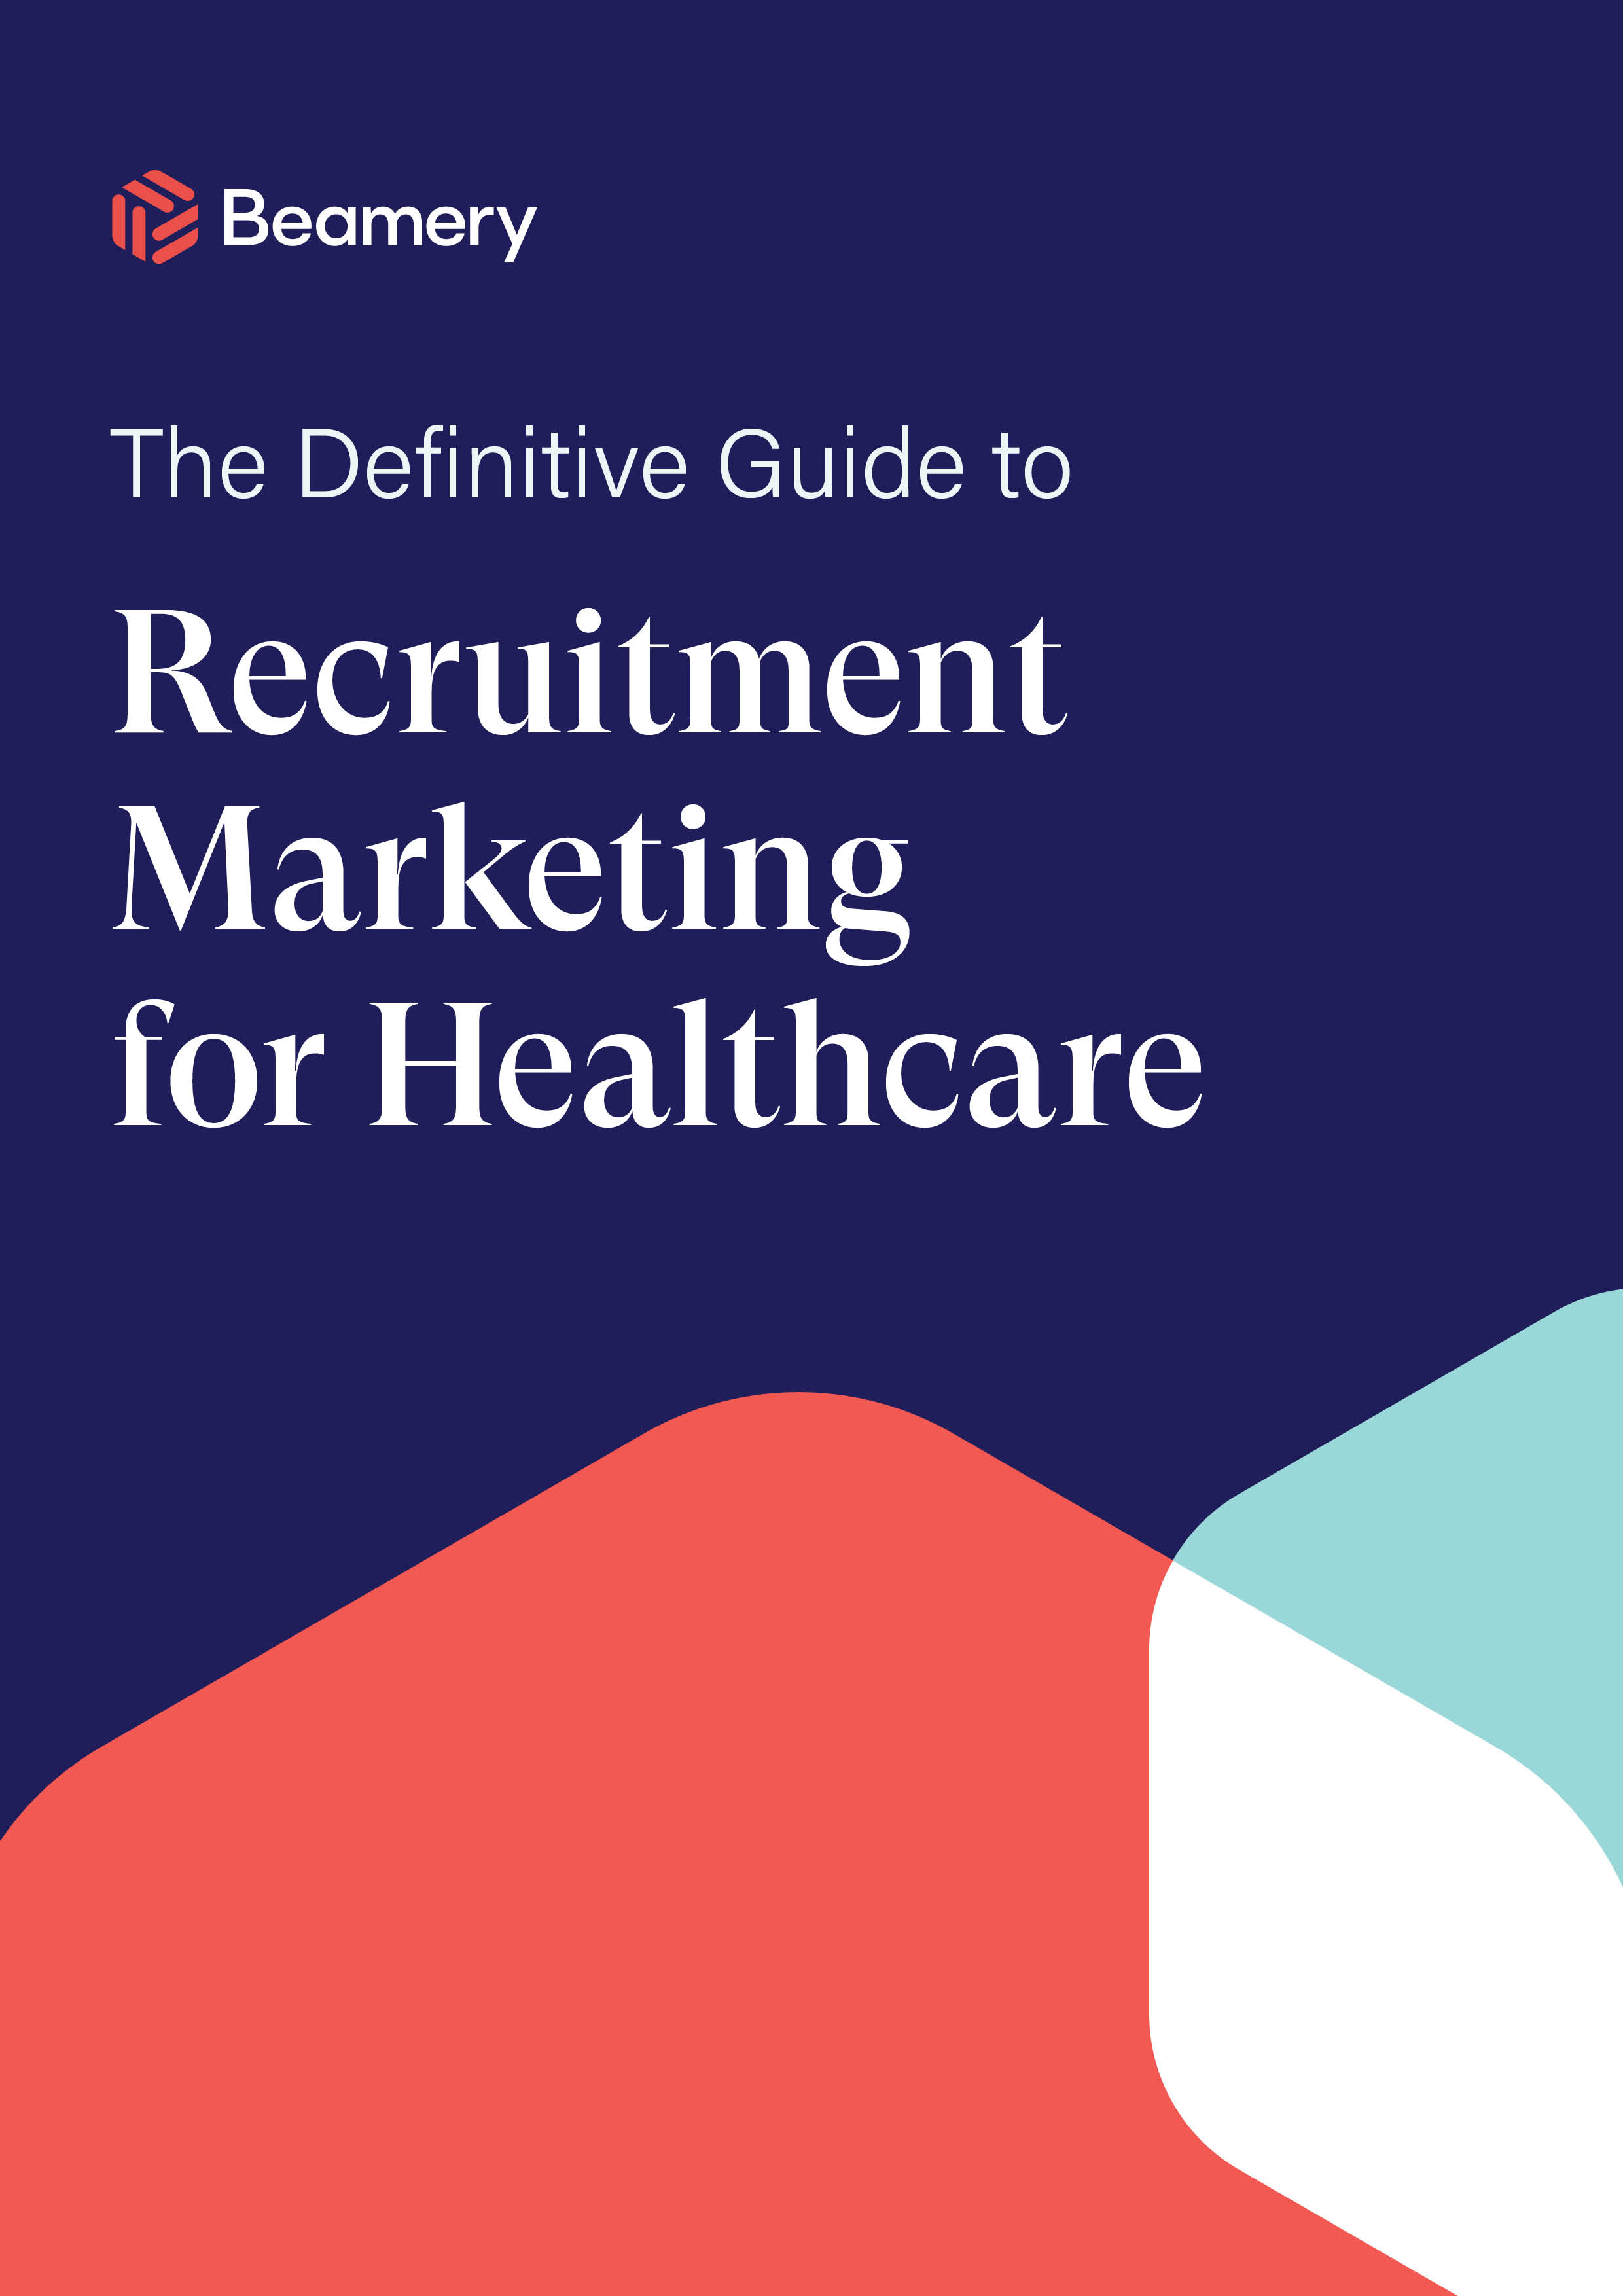 The Definitive Guide to Recruitment Marketing for Healthcare